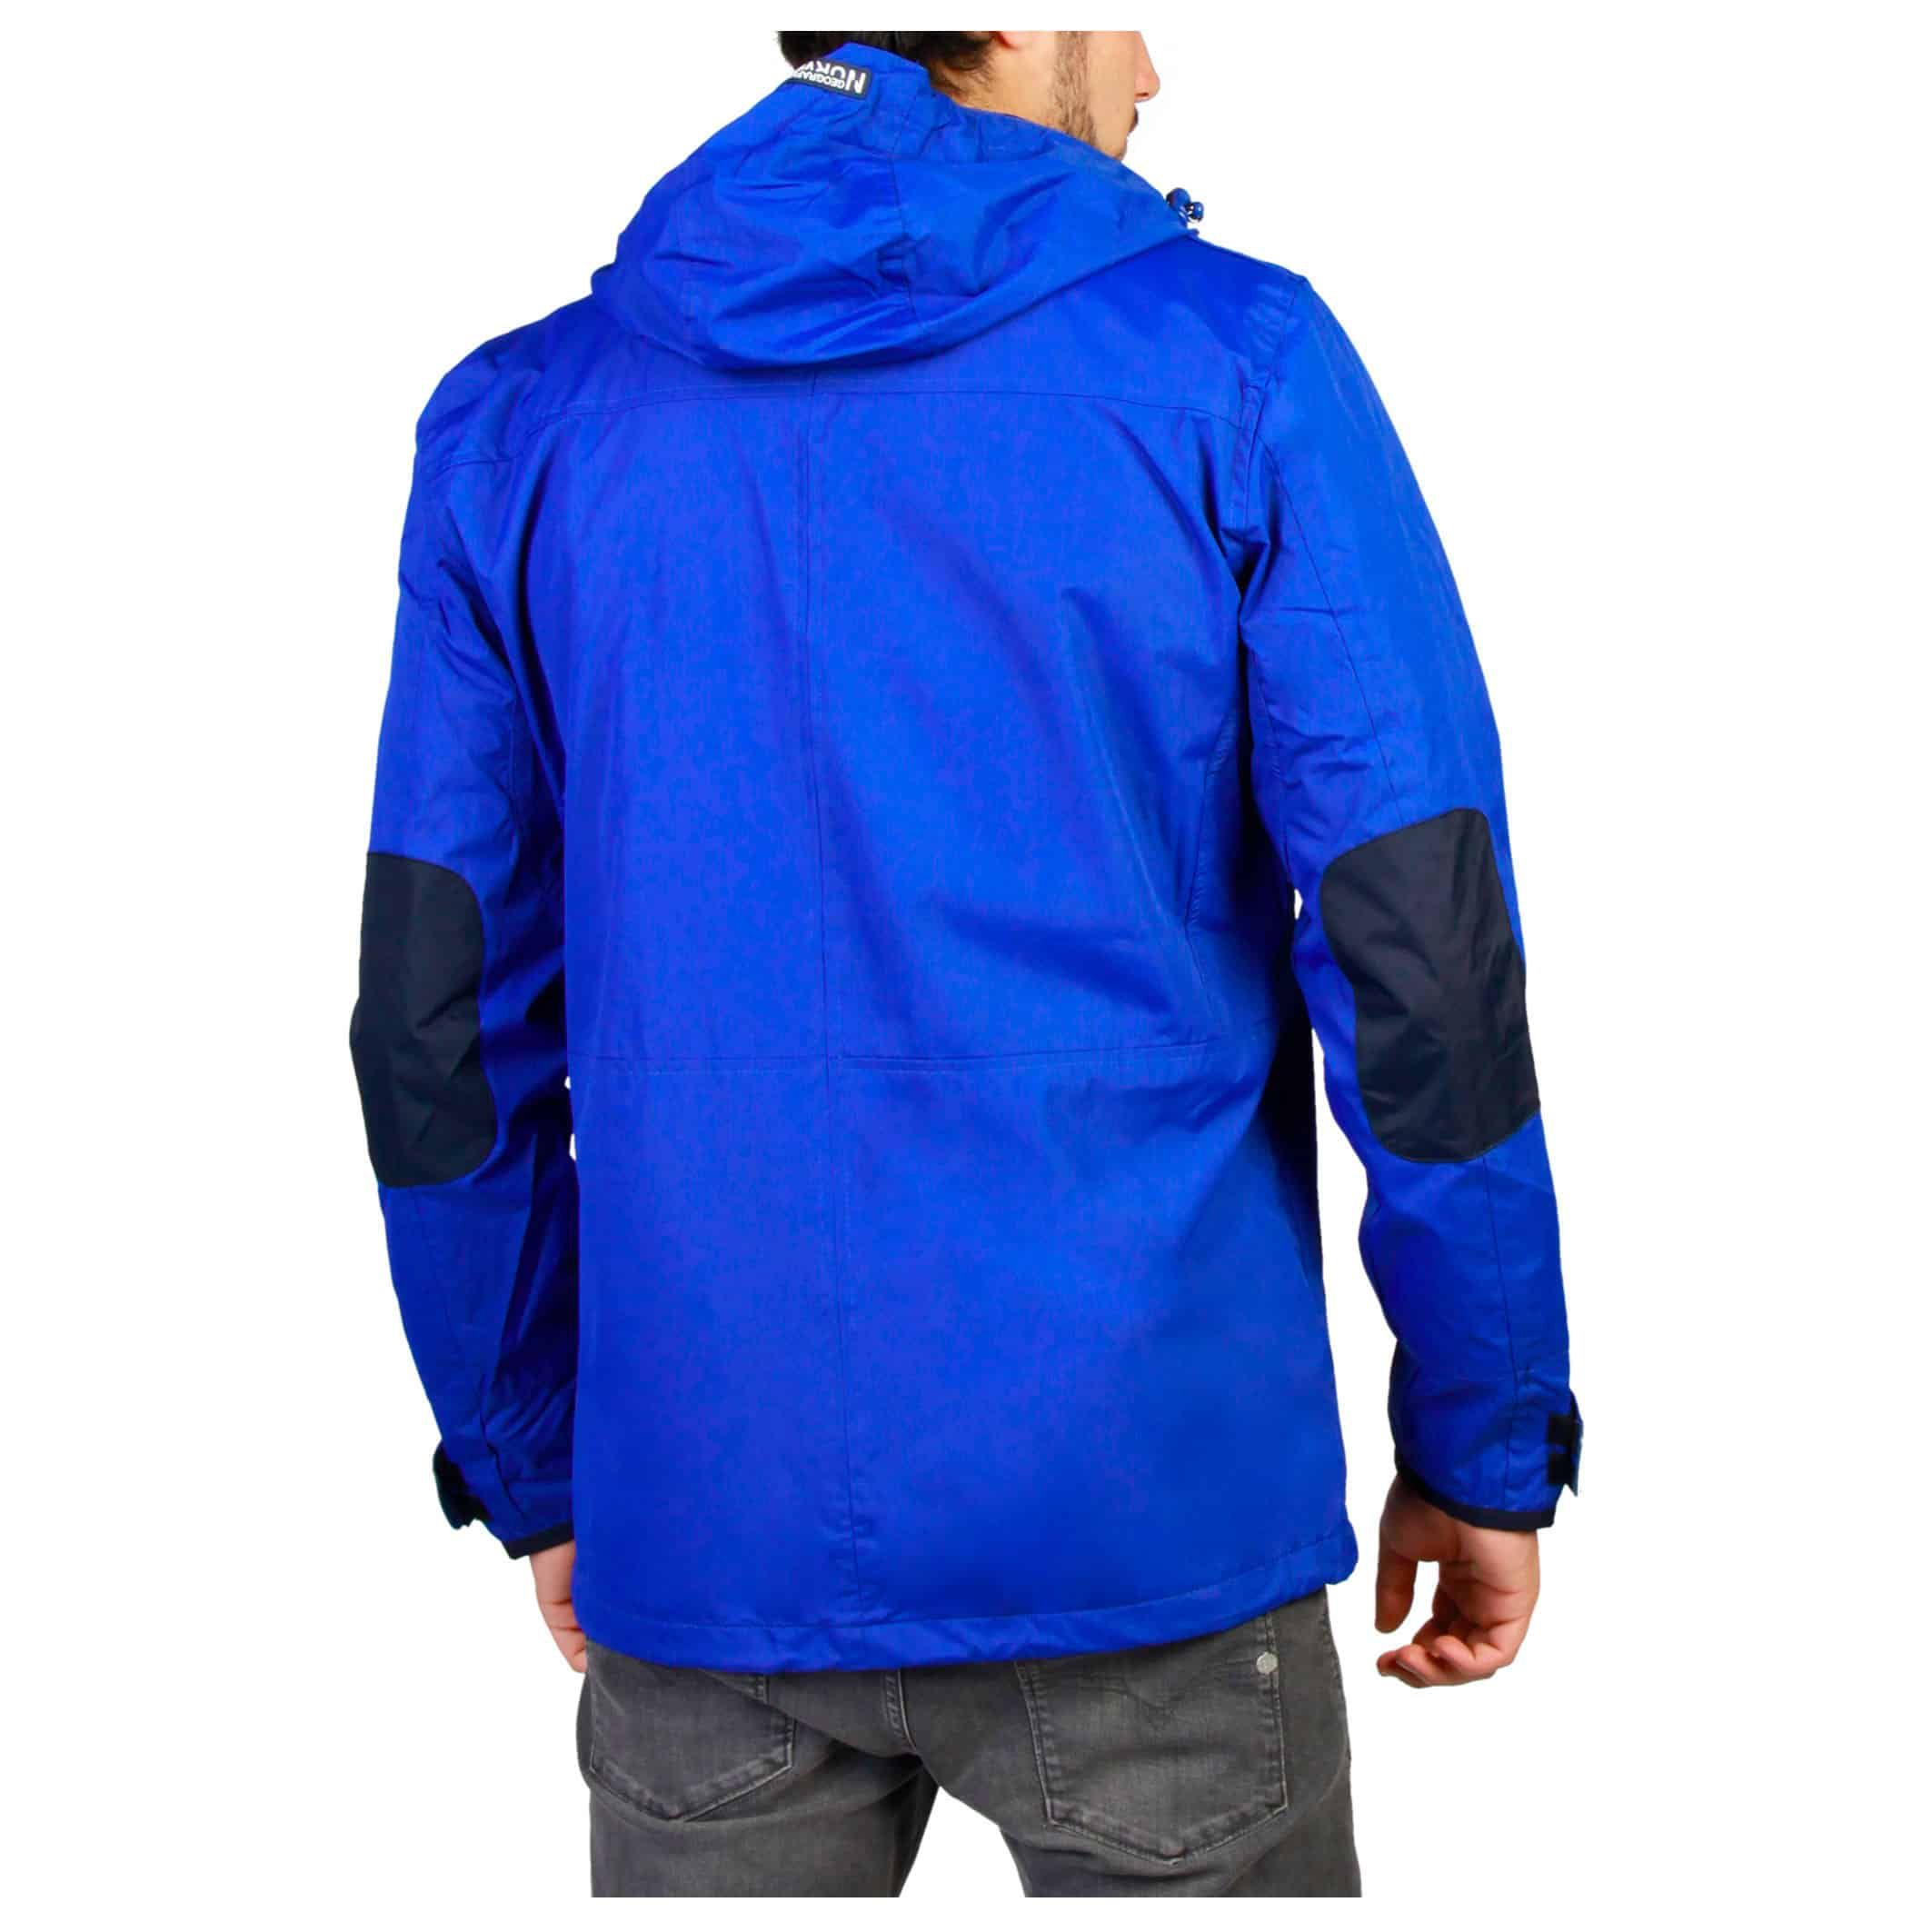 Clothing Geographical Norway – Clement_man